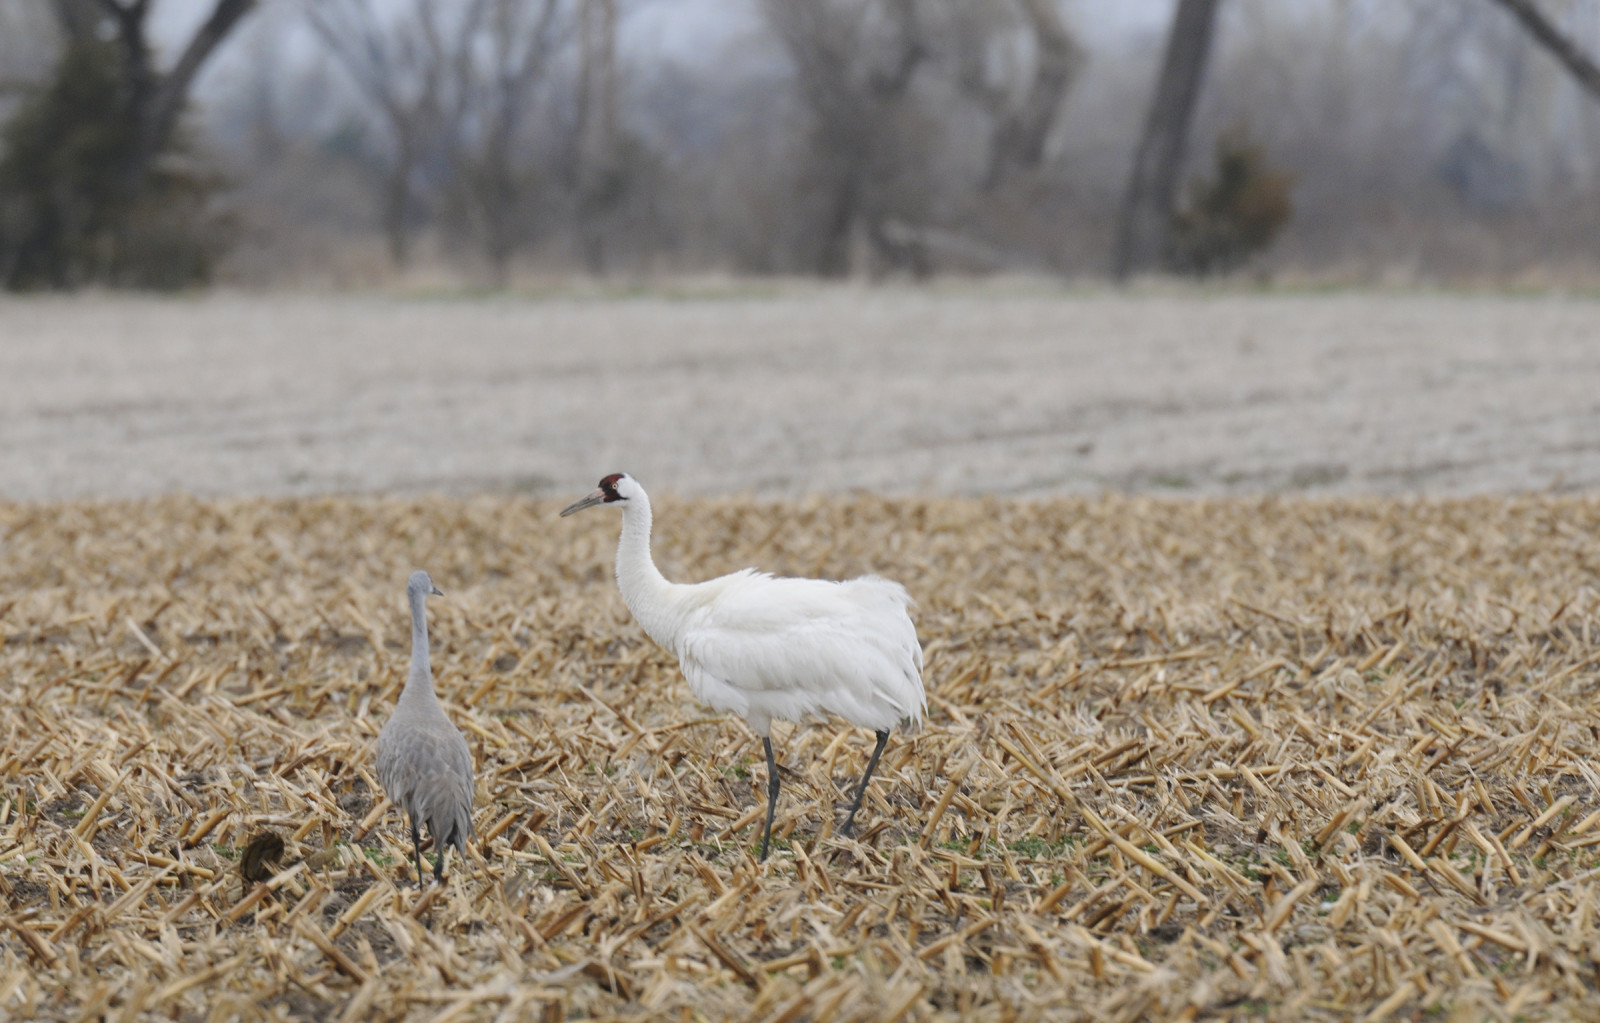 A whooping crane and sandhill crane forage in a cornfield near the central Platte River. (Michael Forsberg)